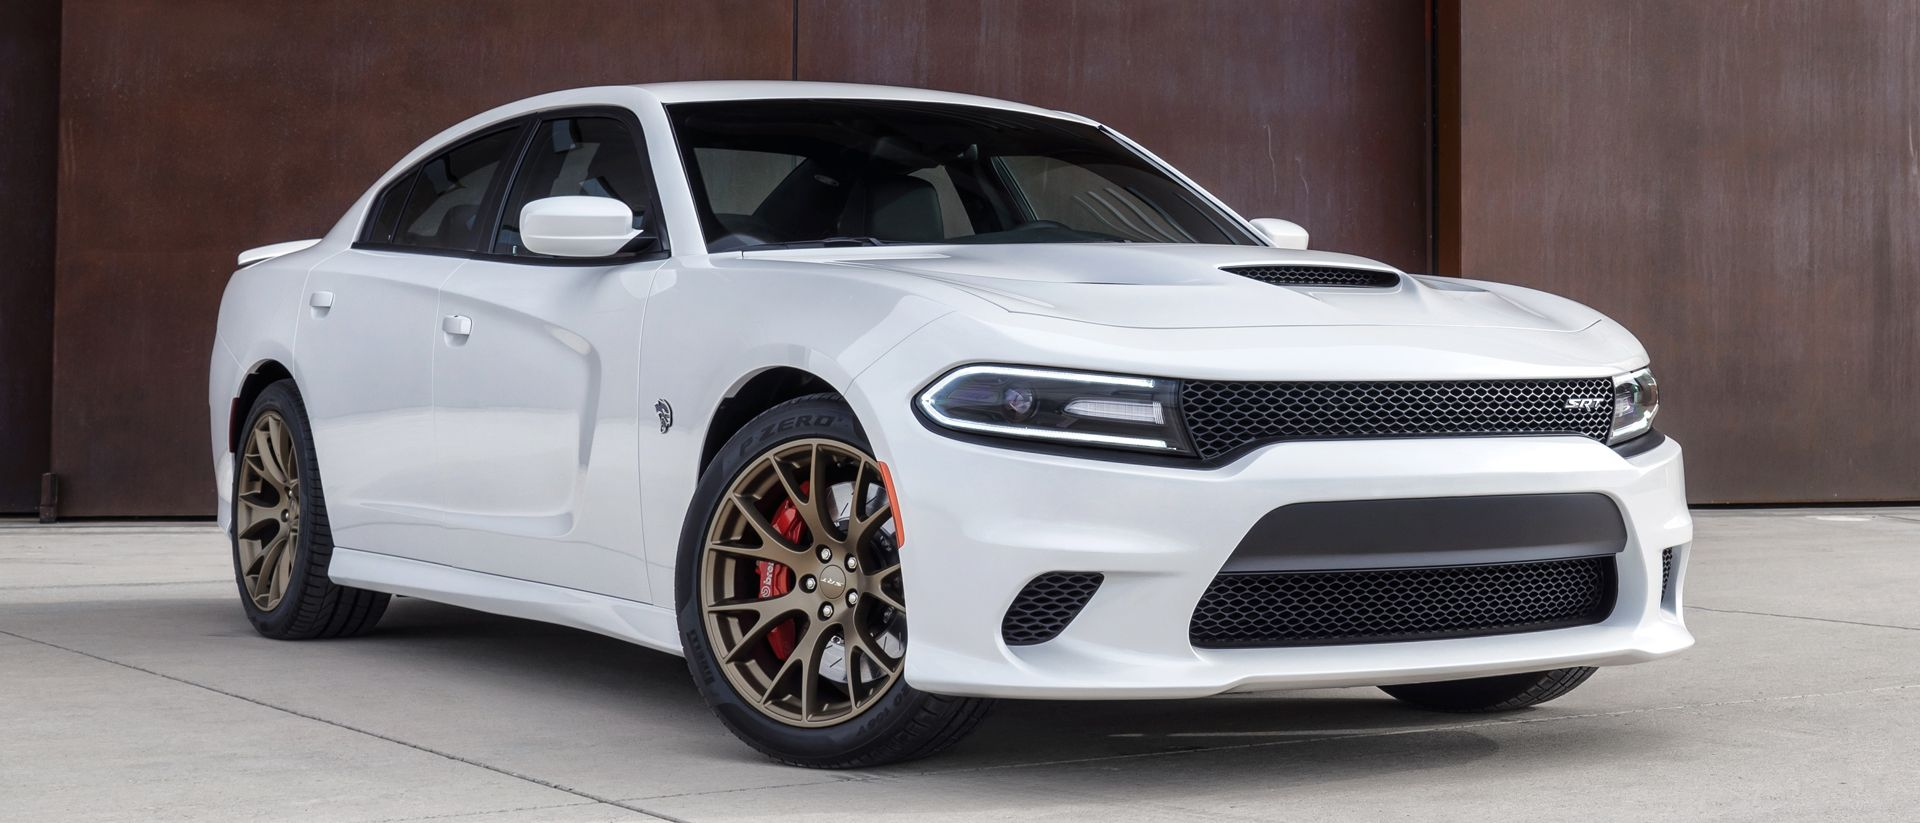 37++ Dodge charger max speed trends